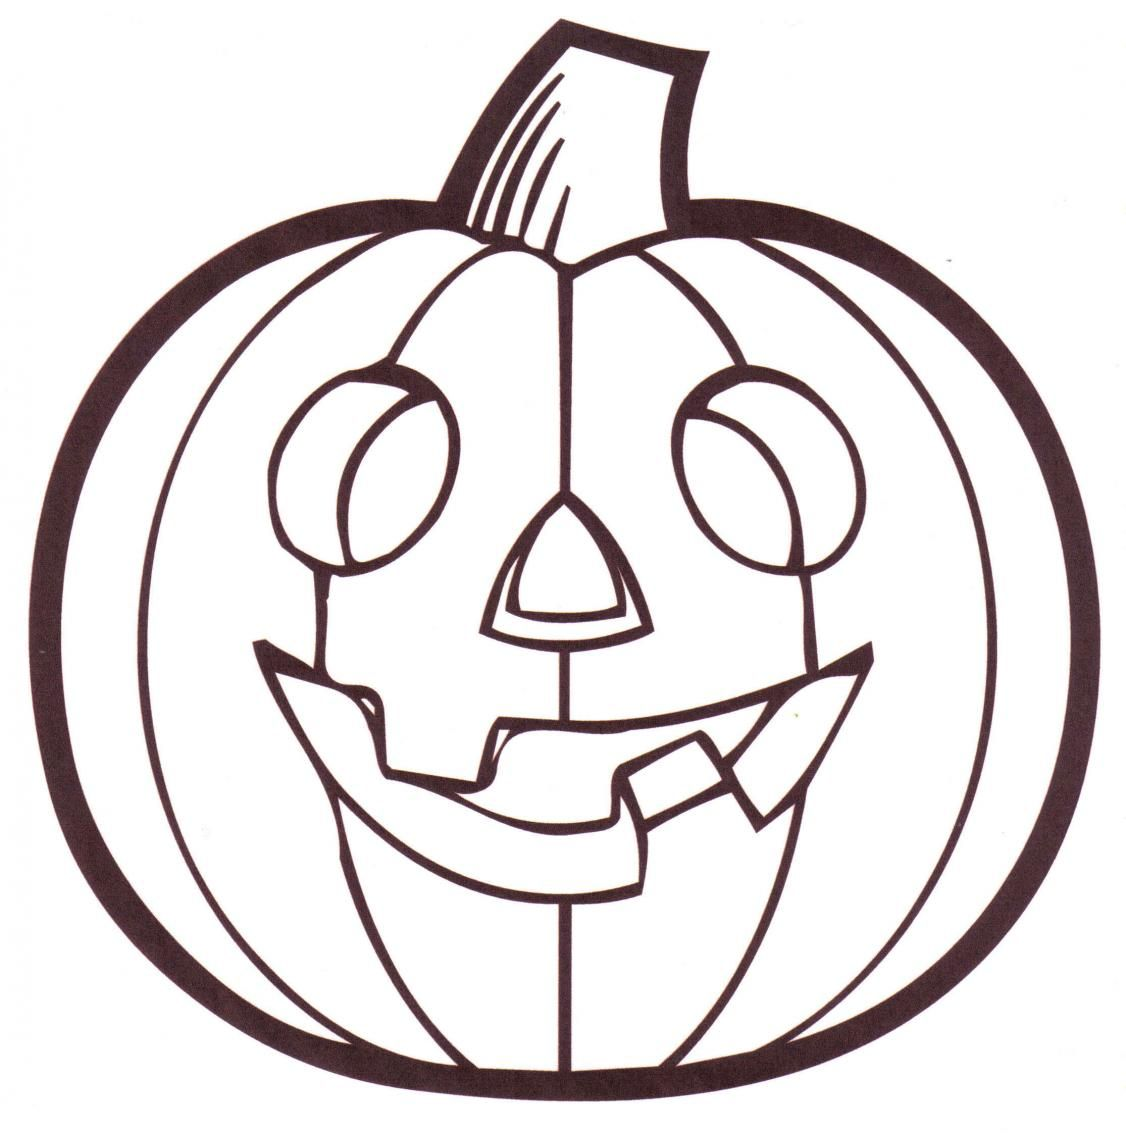 Uncategorized How To Draw A Halloween Pumpkin we have compiled a set of high quality pumpkin coloring pages halloween free online printable sheets for kids get the latest colorin